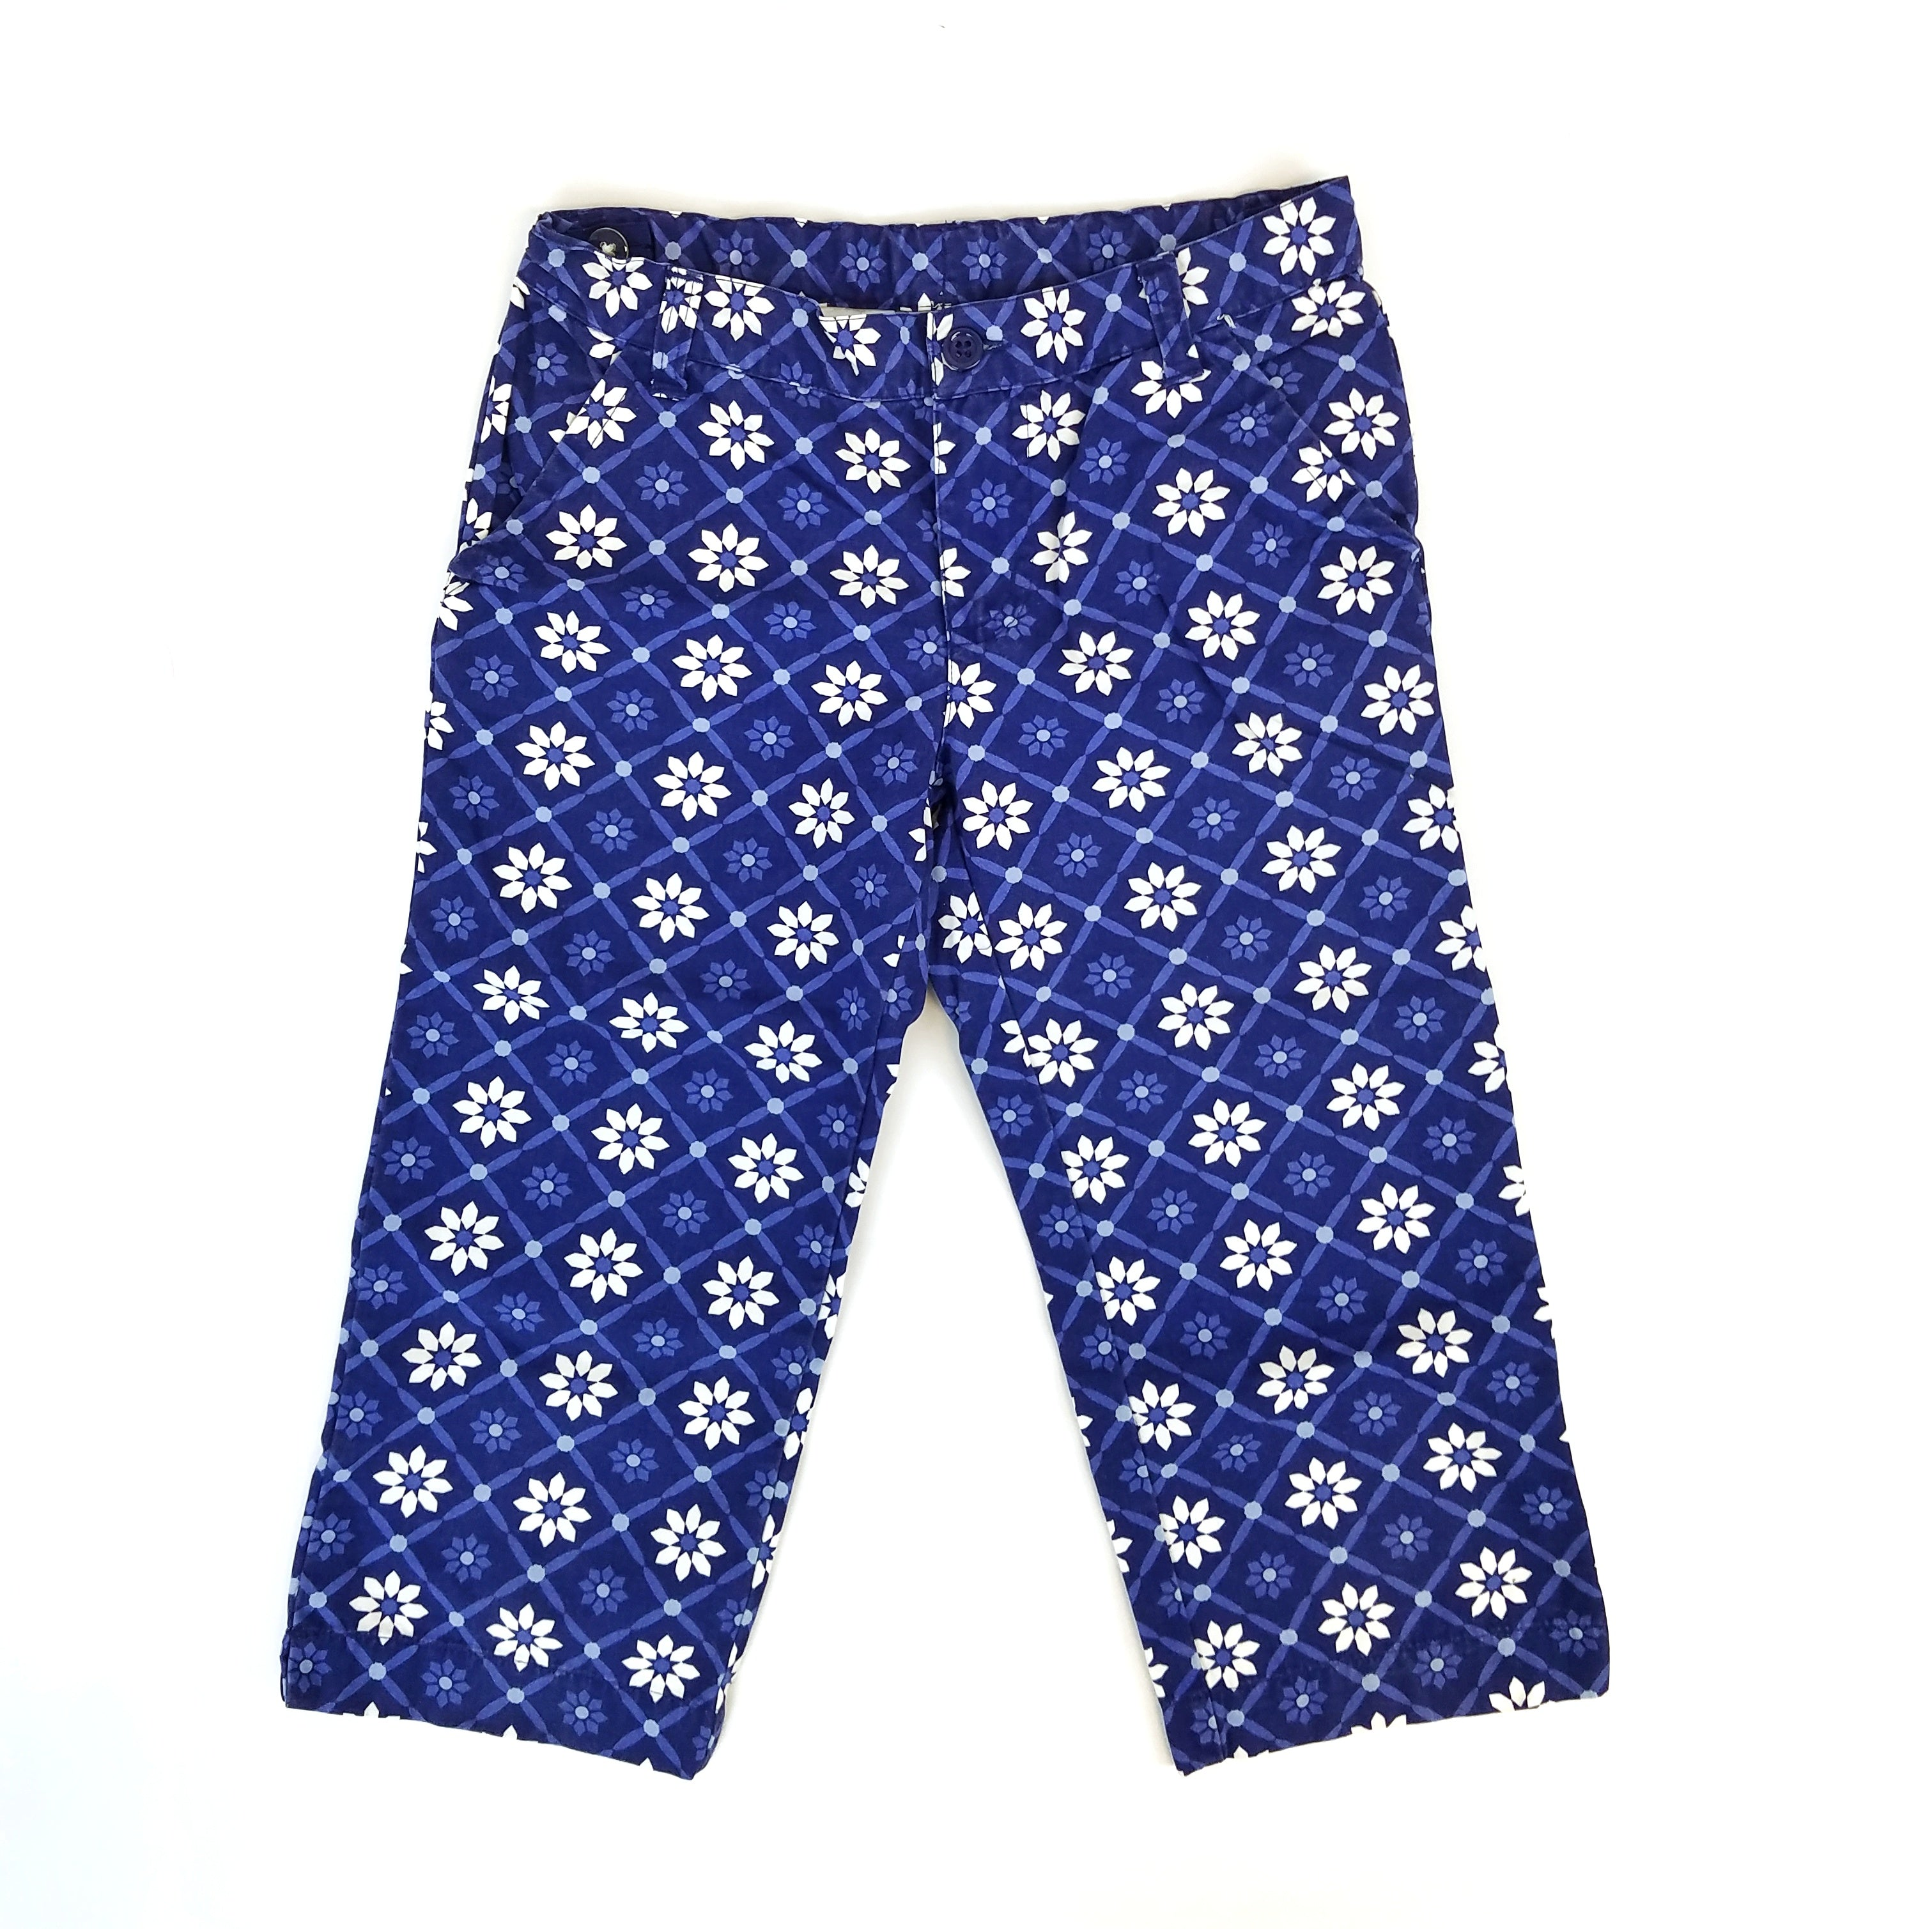 Sz 9 Blue Geometric Floral Capris - Wild Child